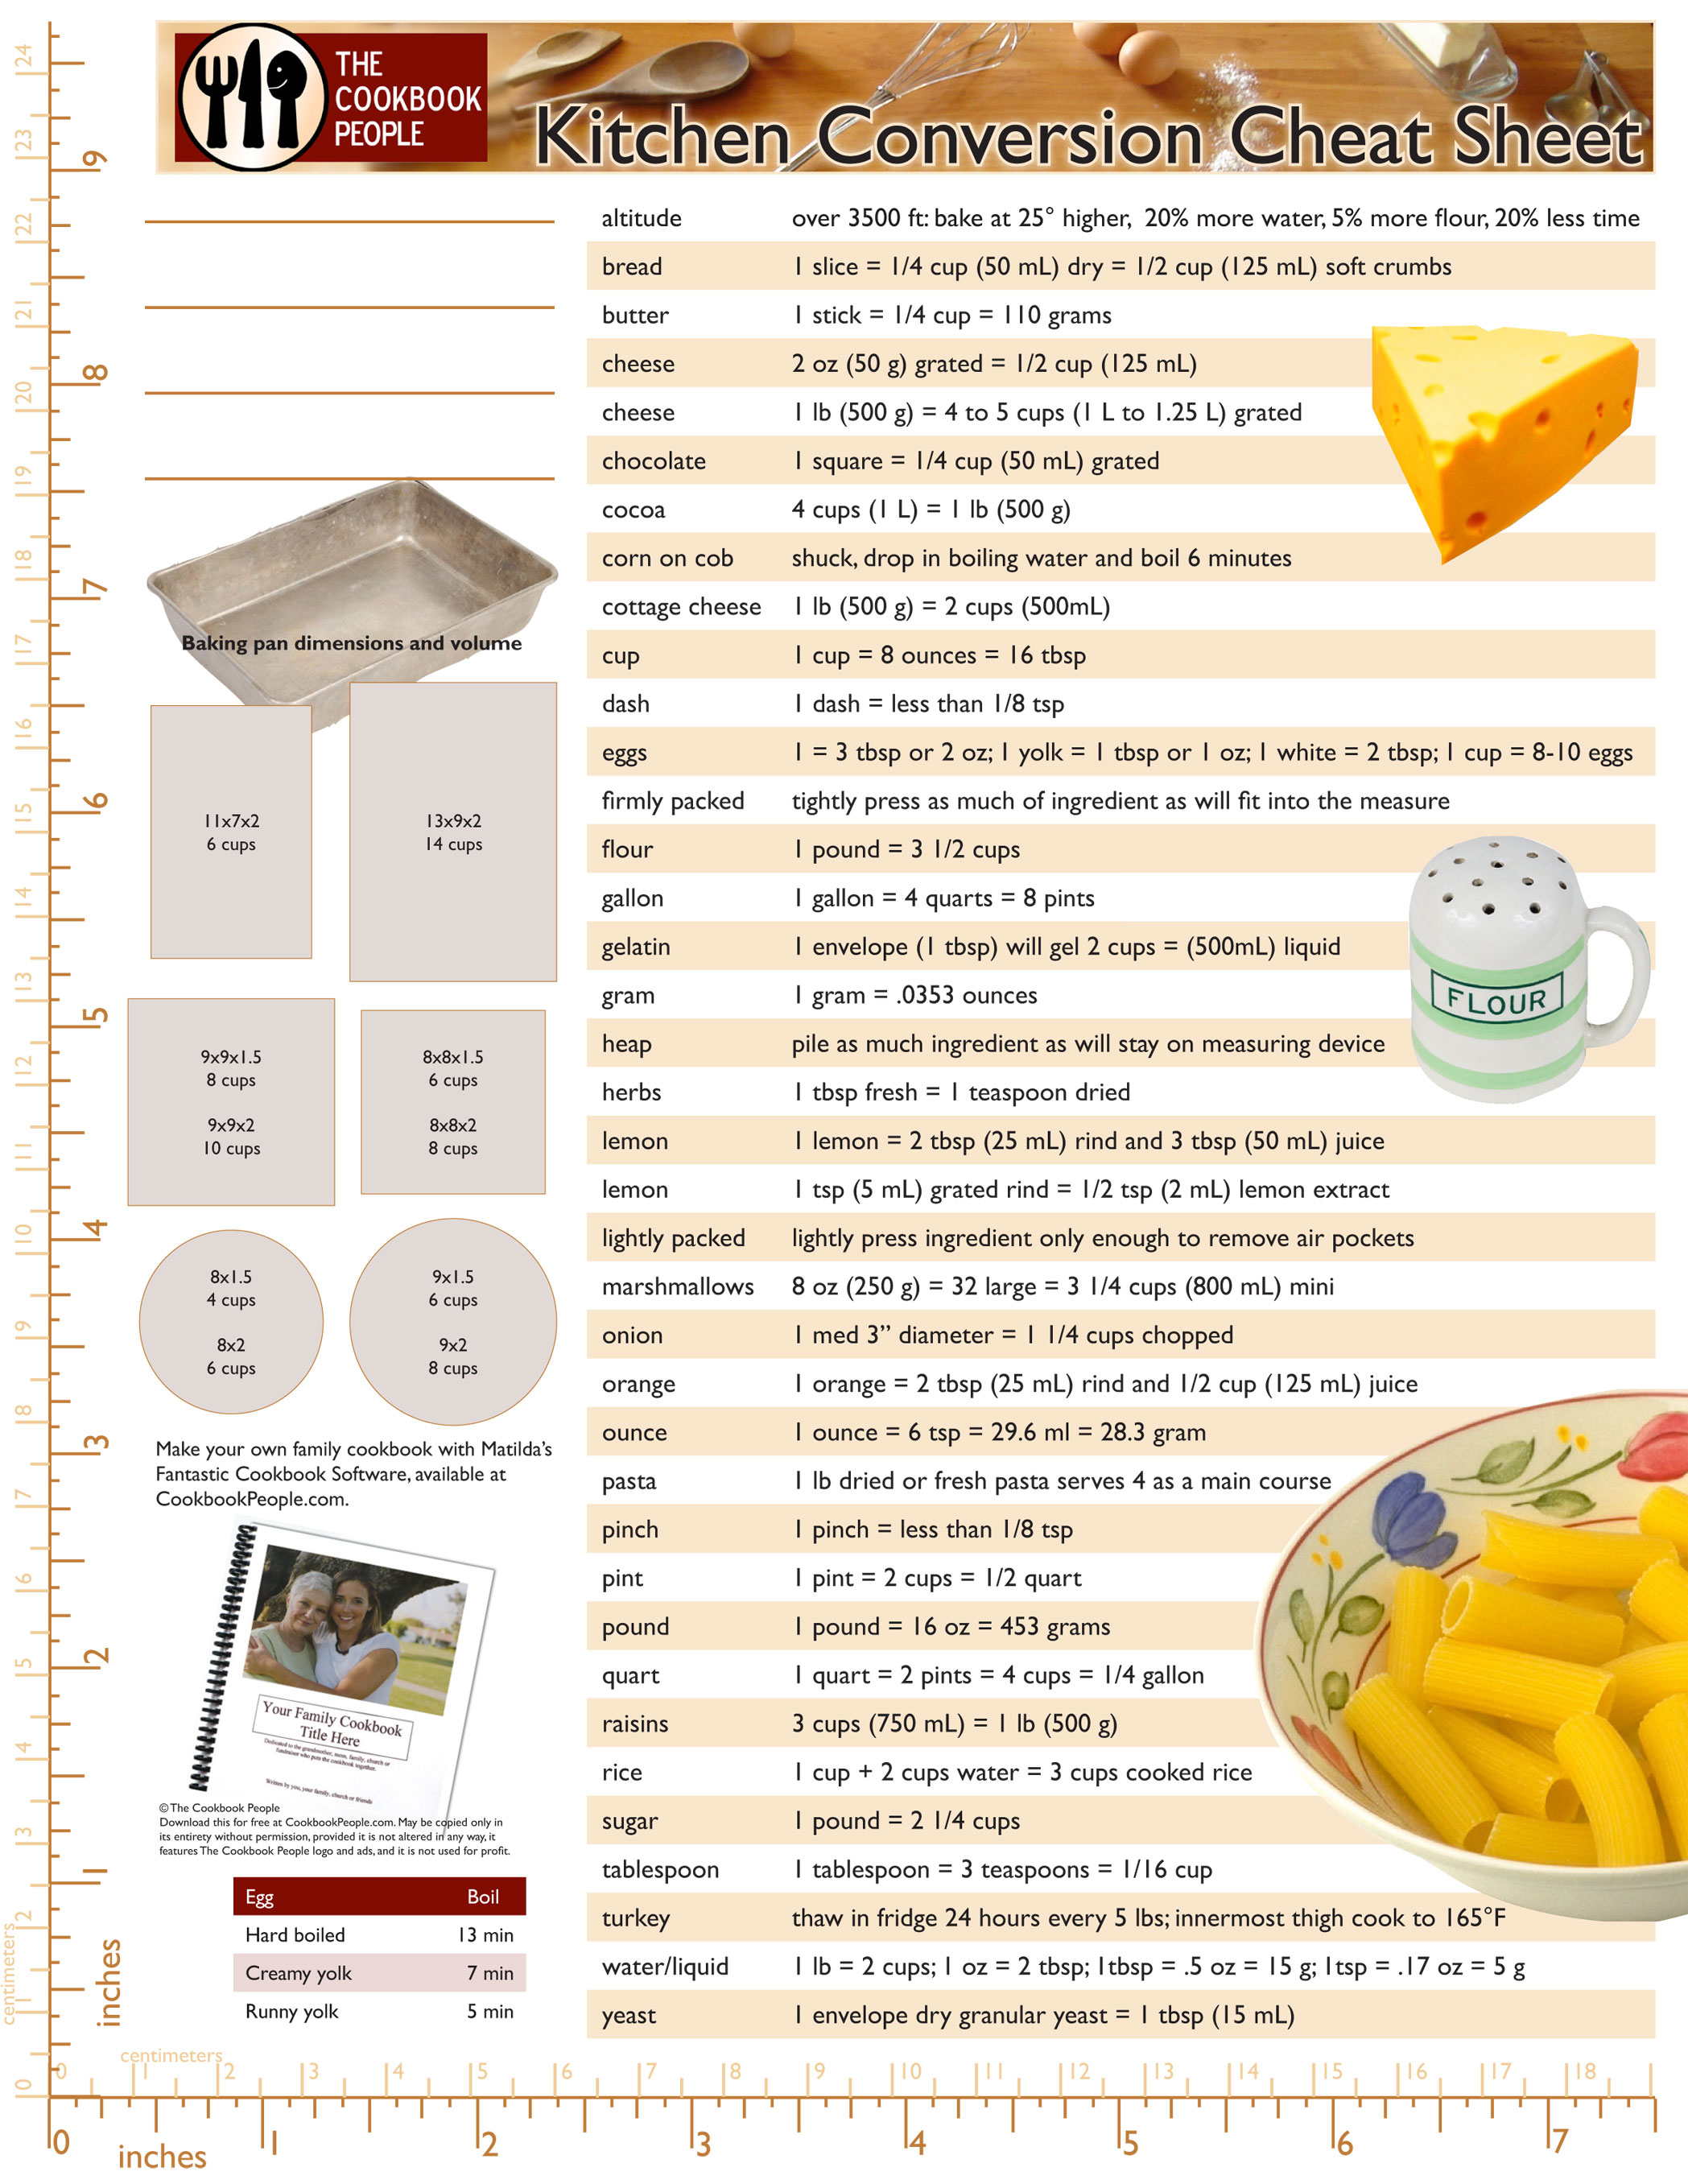 Family cookbook site releases free printer friendly kitchen conversion chart page 1 nvjuhfo Gallery